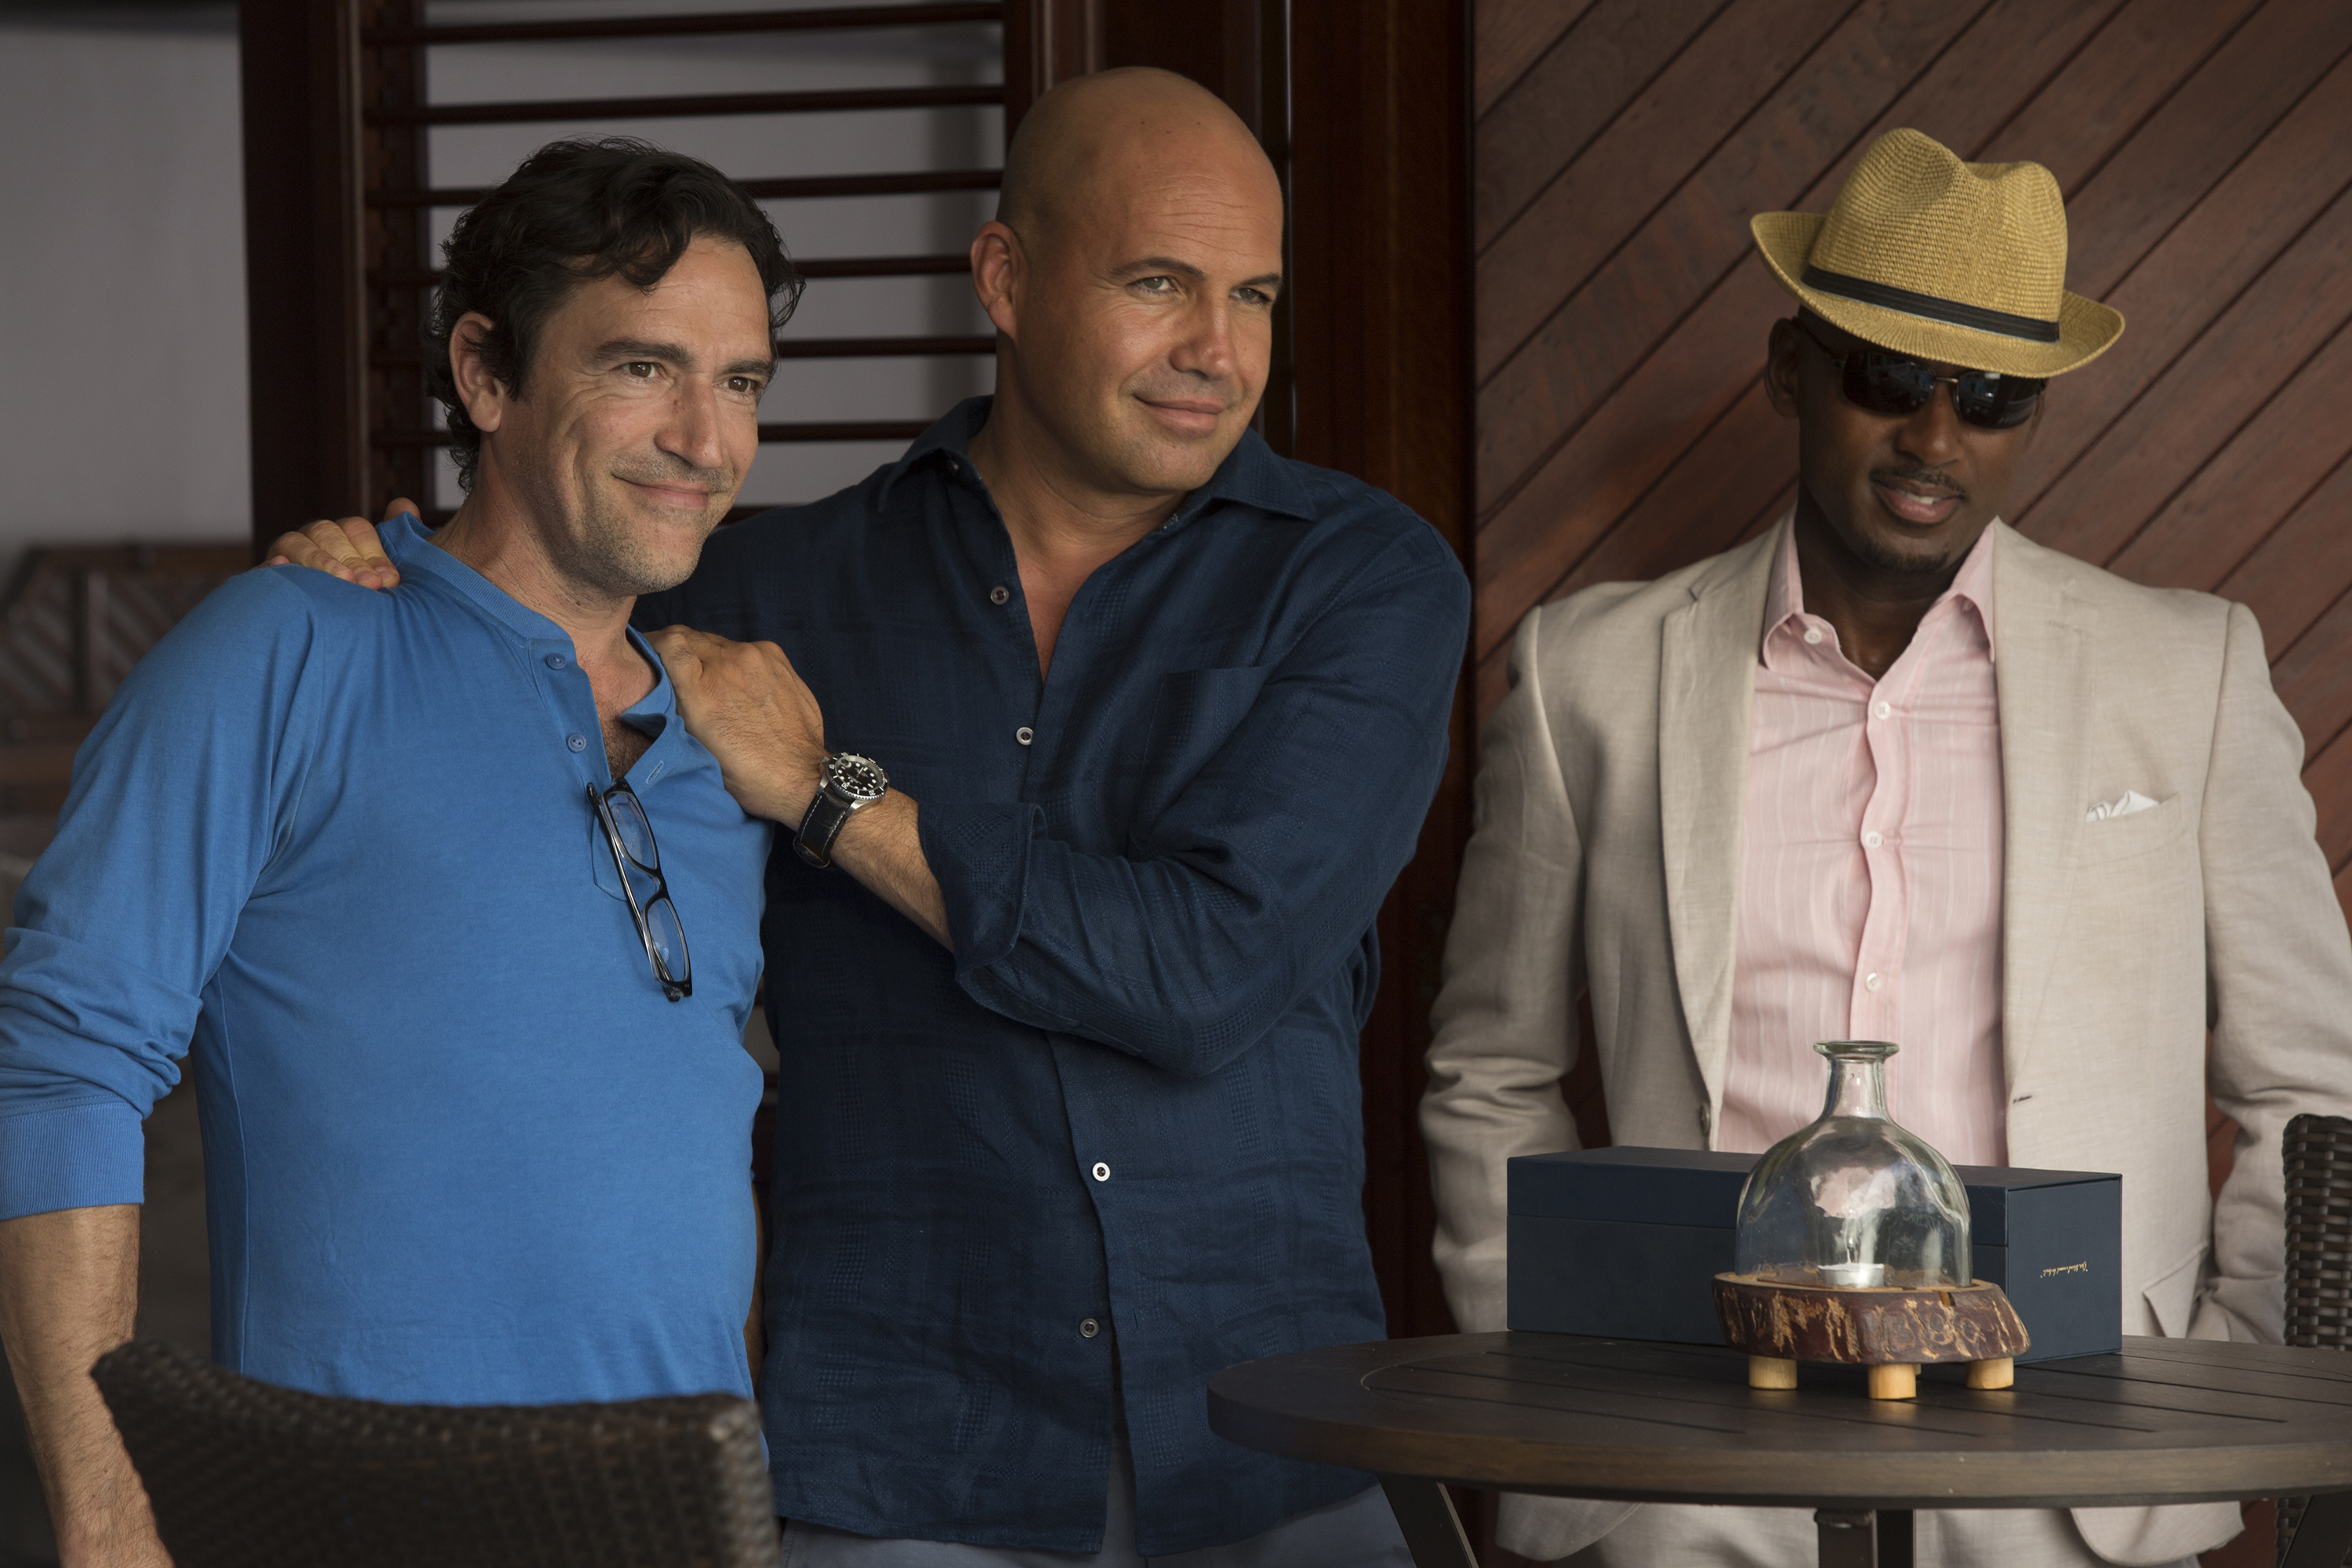 Amazon's 'Mad Dogs' To End After One Season, Says EP Shawn Ryan